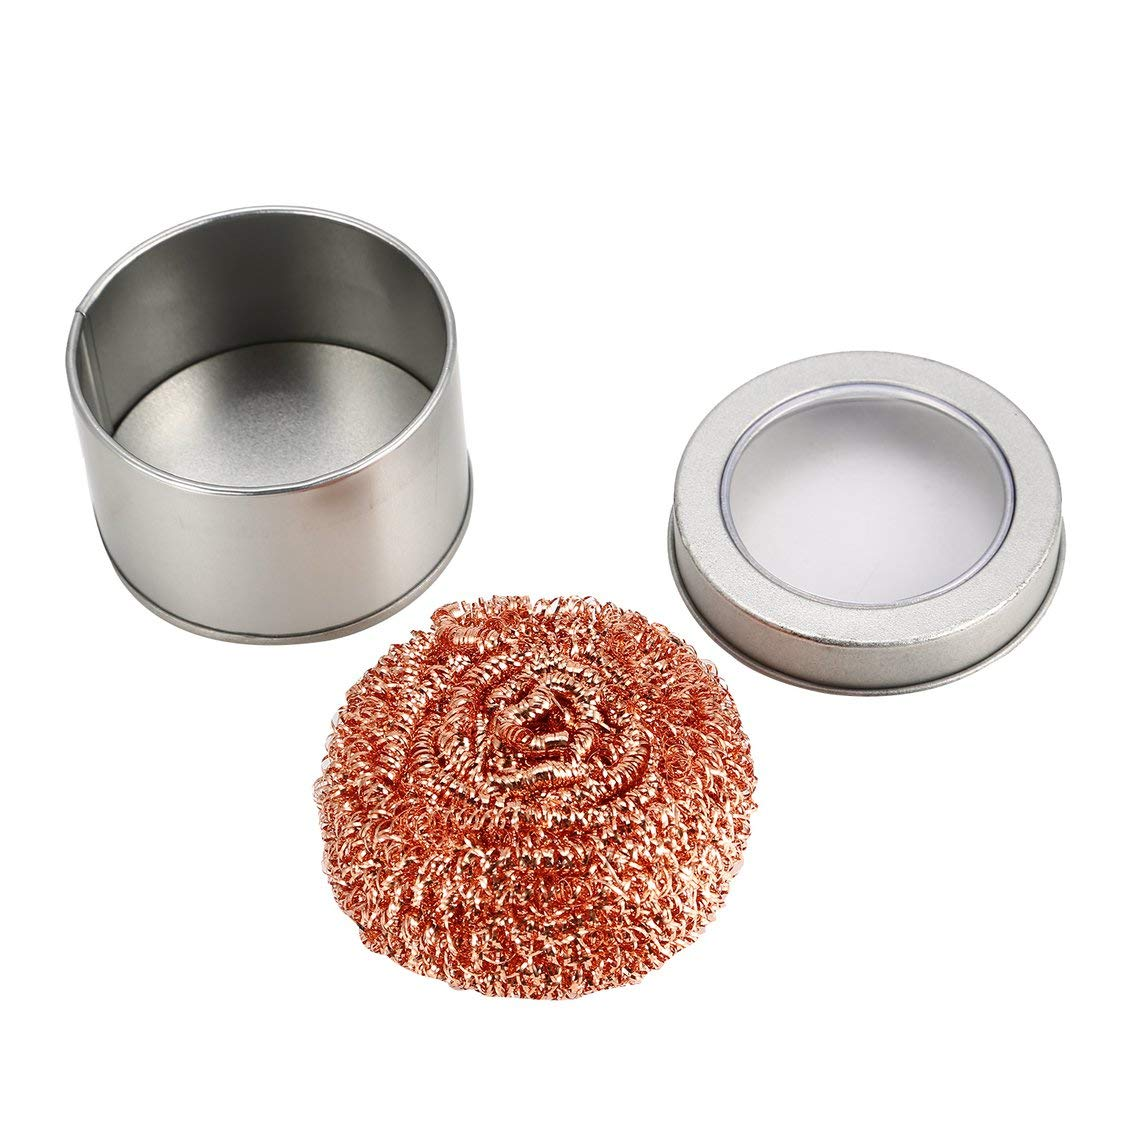 Desoldering Soldering Iron Mesh Filter Cleaning Nozzle Tip Copper Wire Ball Clean Ball Cleaning Ball Steel Wire Sponge